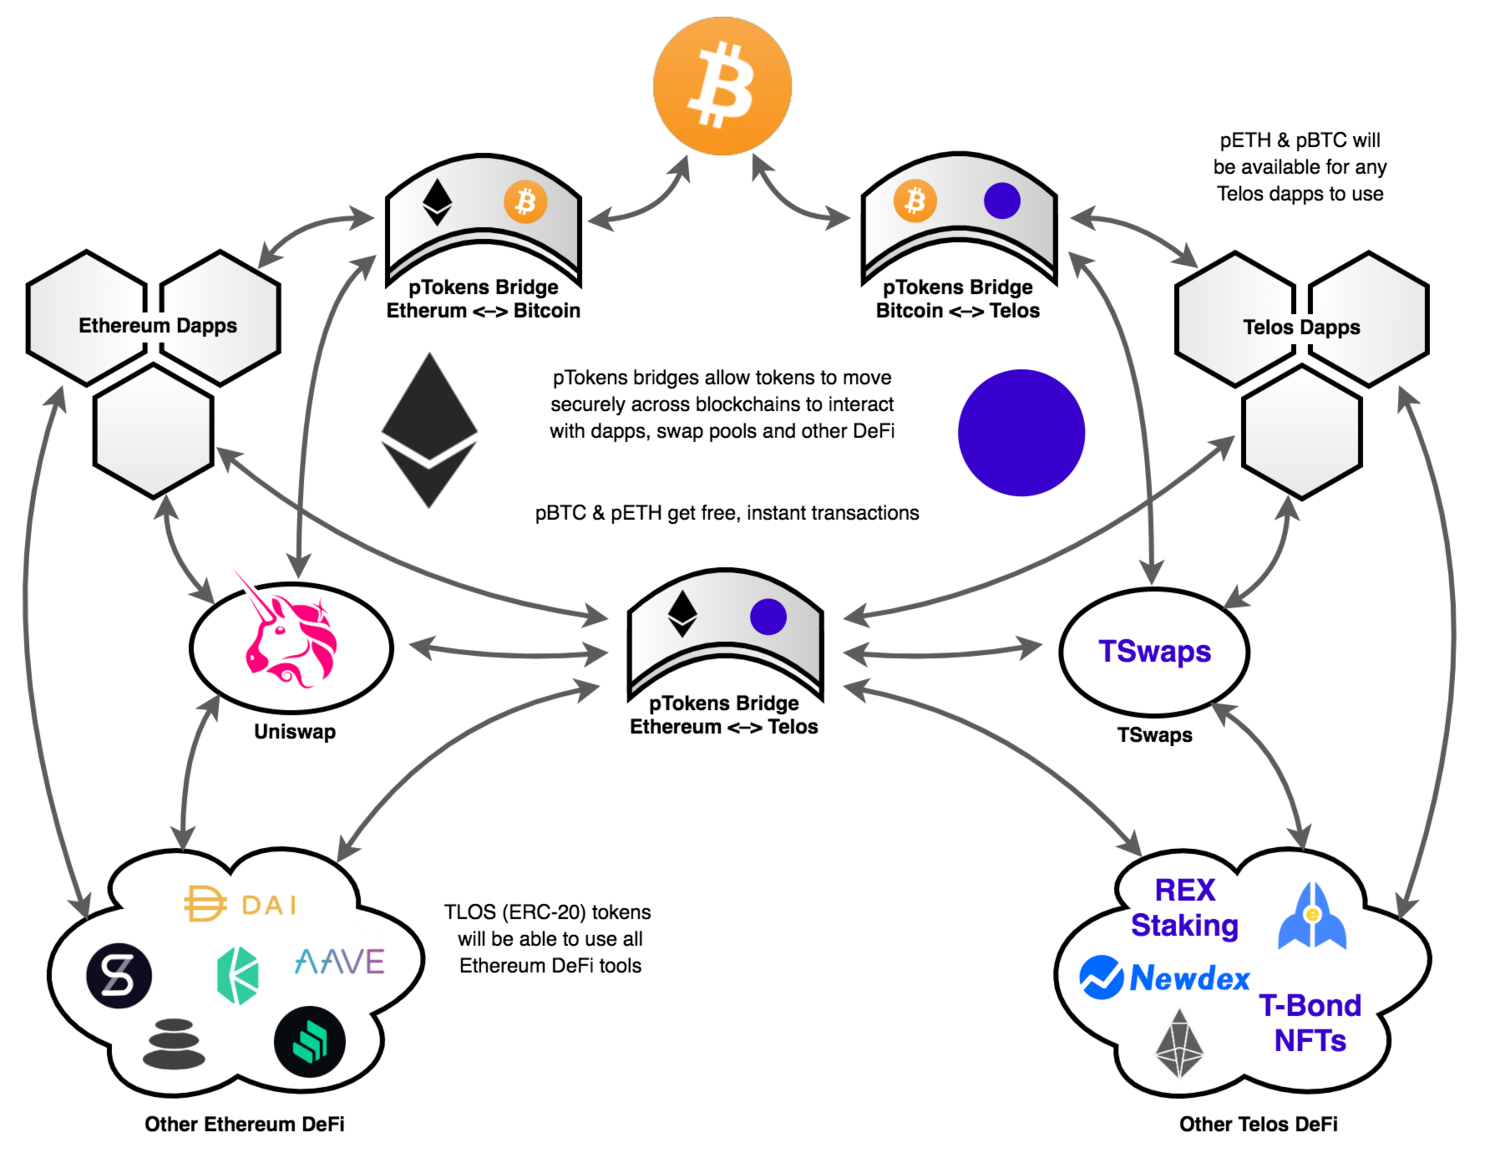 The combination of pTokens bridges, liquidity pools, dapps and other DeFi tools create a rich, synergistic and mutually beneficial ecosystem between Telos and other blockchains.